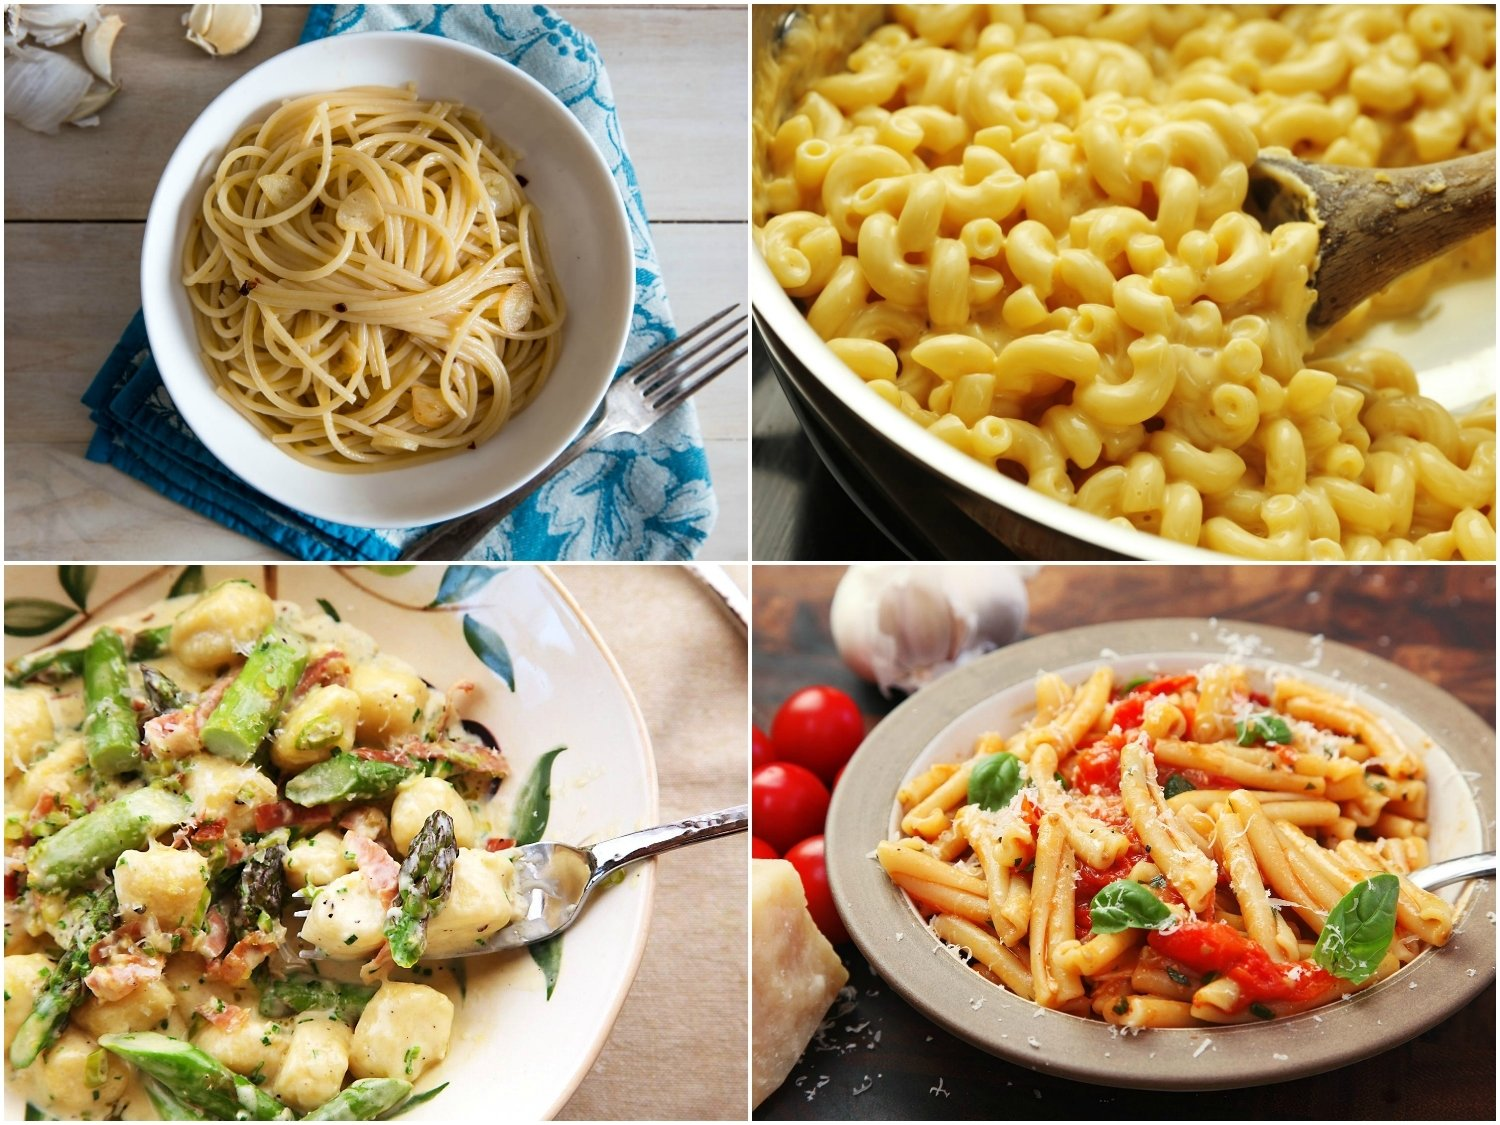 10 Best Cheap And Quick Dinner Ideas 25 quick pasta recipes for simple weeknight meals serious eats 1